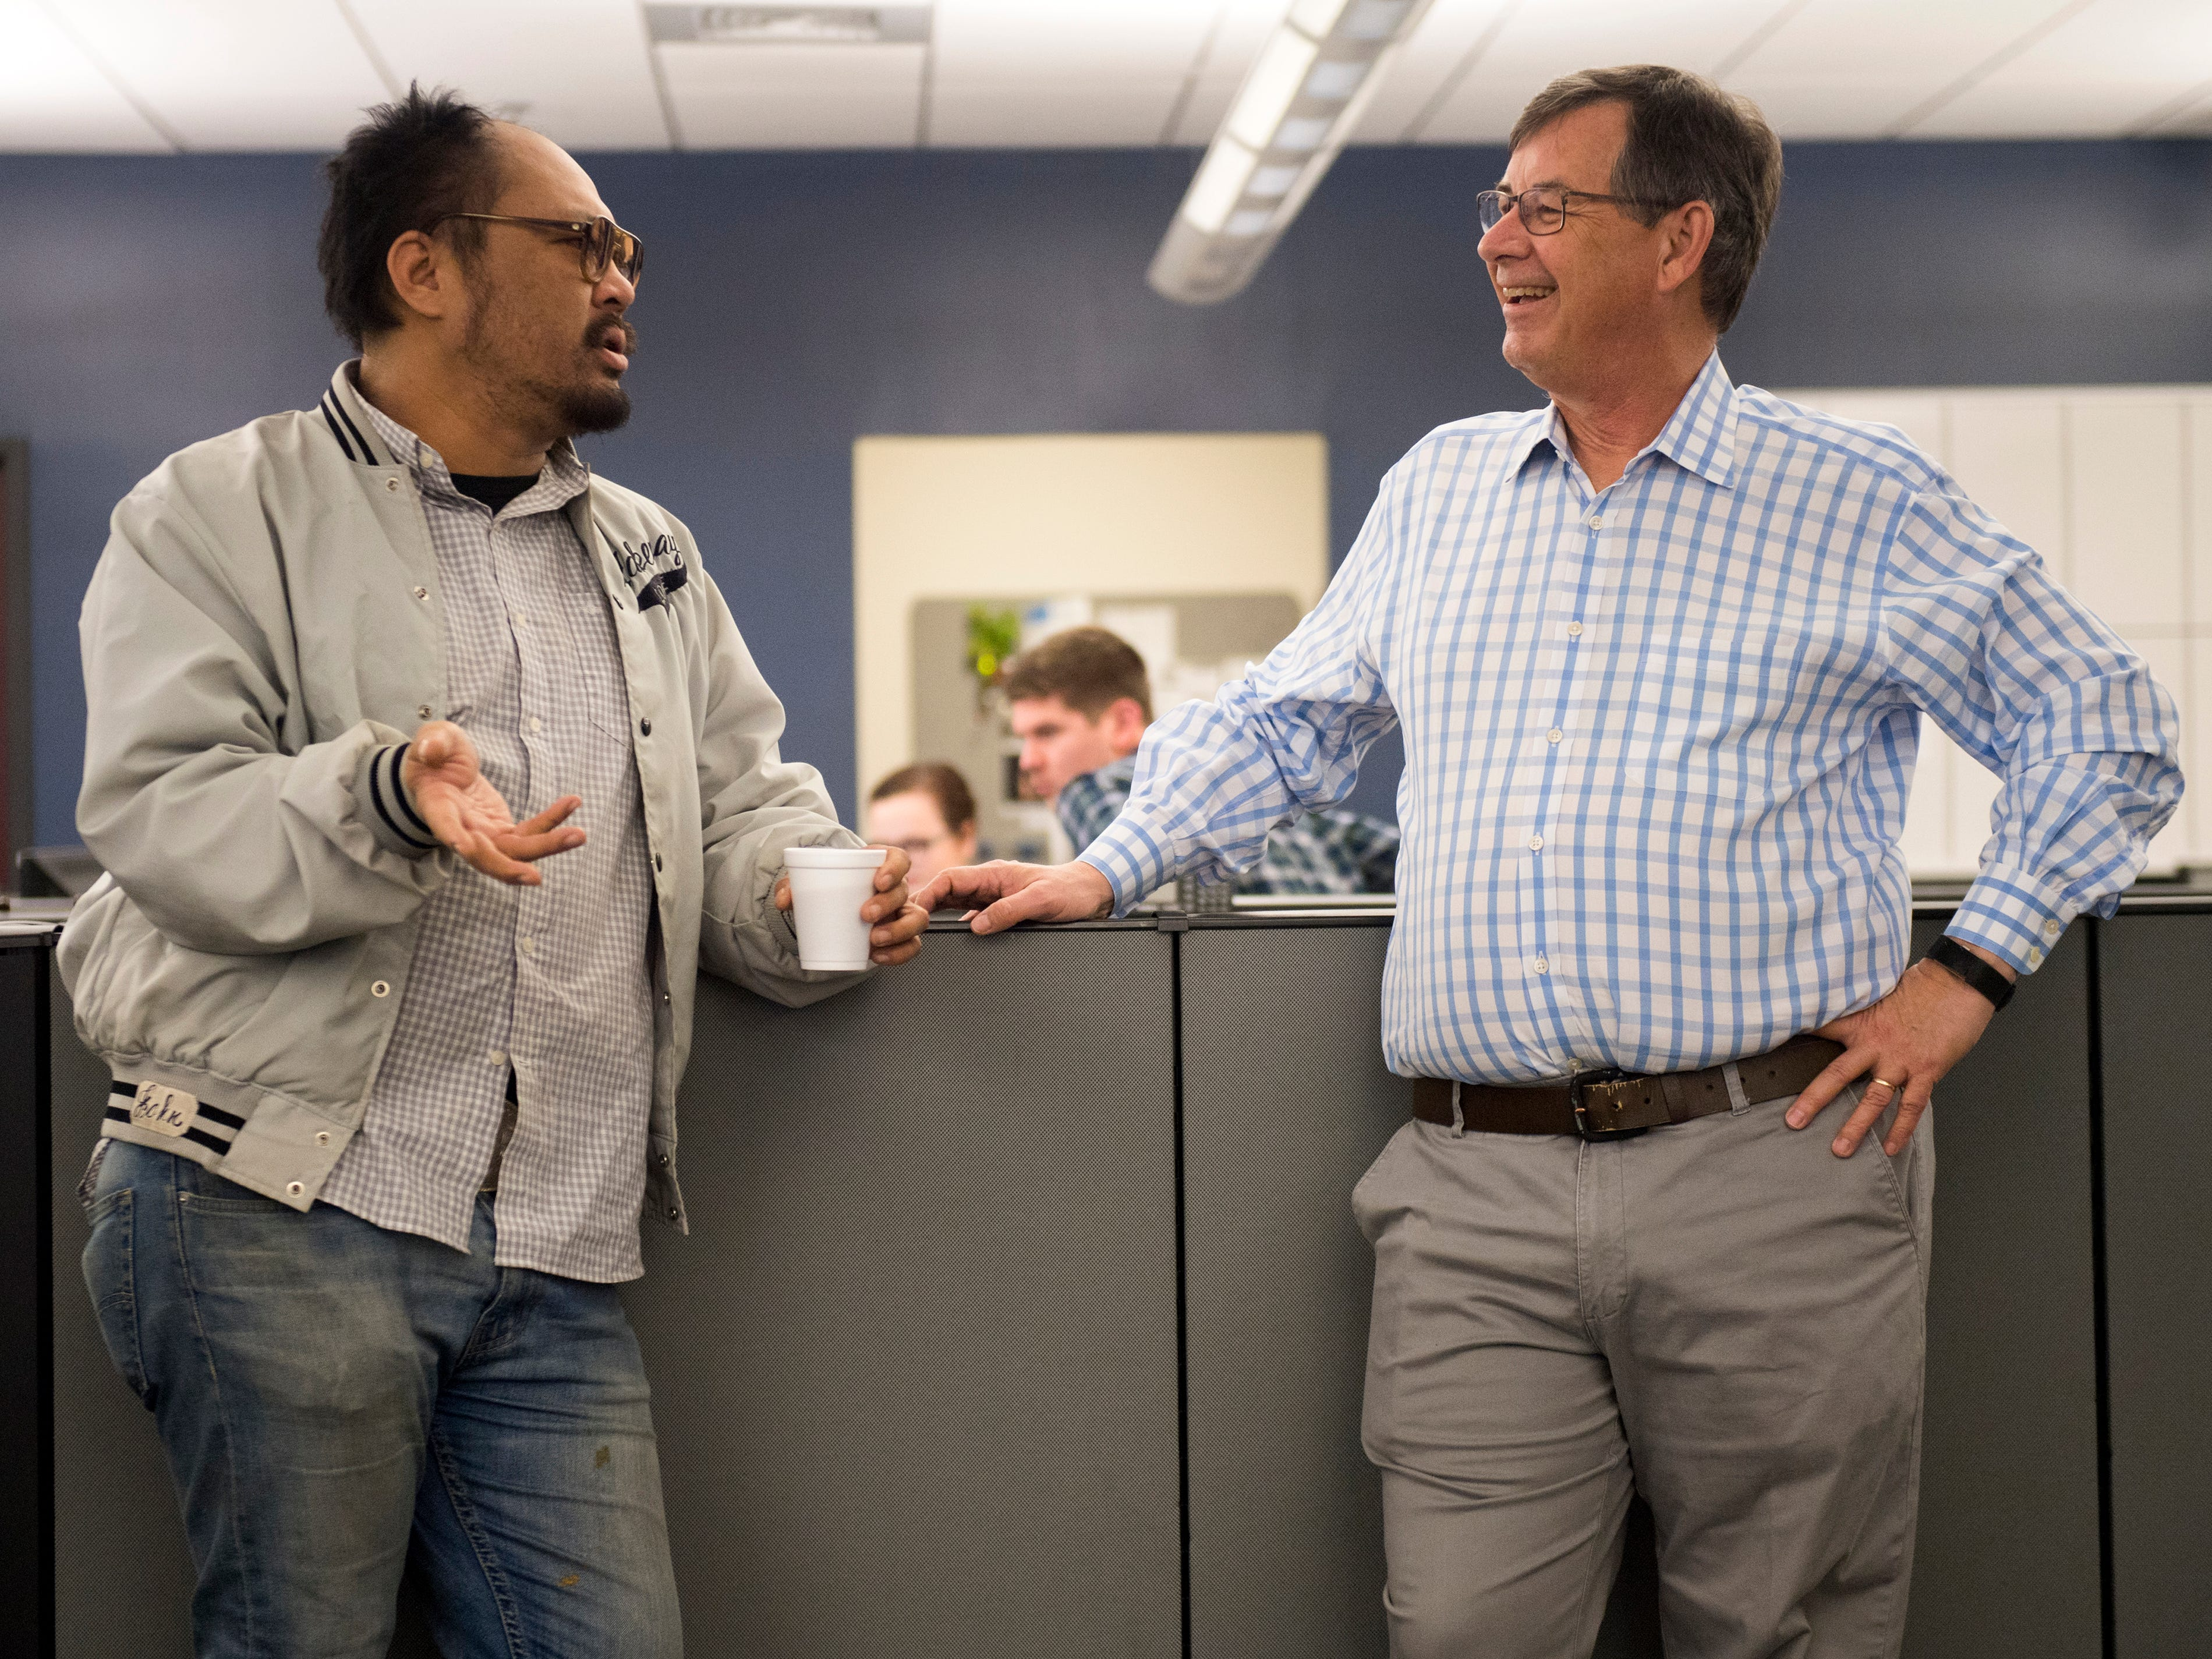 Photographer Saul Young, left, shares a story with Consumer Experience Director Jack Lail in the Knoxville News Sentinel's newsroom on Wednesday, January 2, 2019. The Knoxville News Sentinel celebrated the retirements of Mary Constantine, Jack Lail and Michael Patrick.